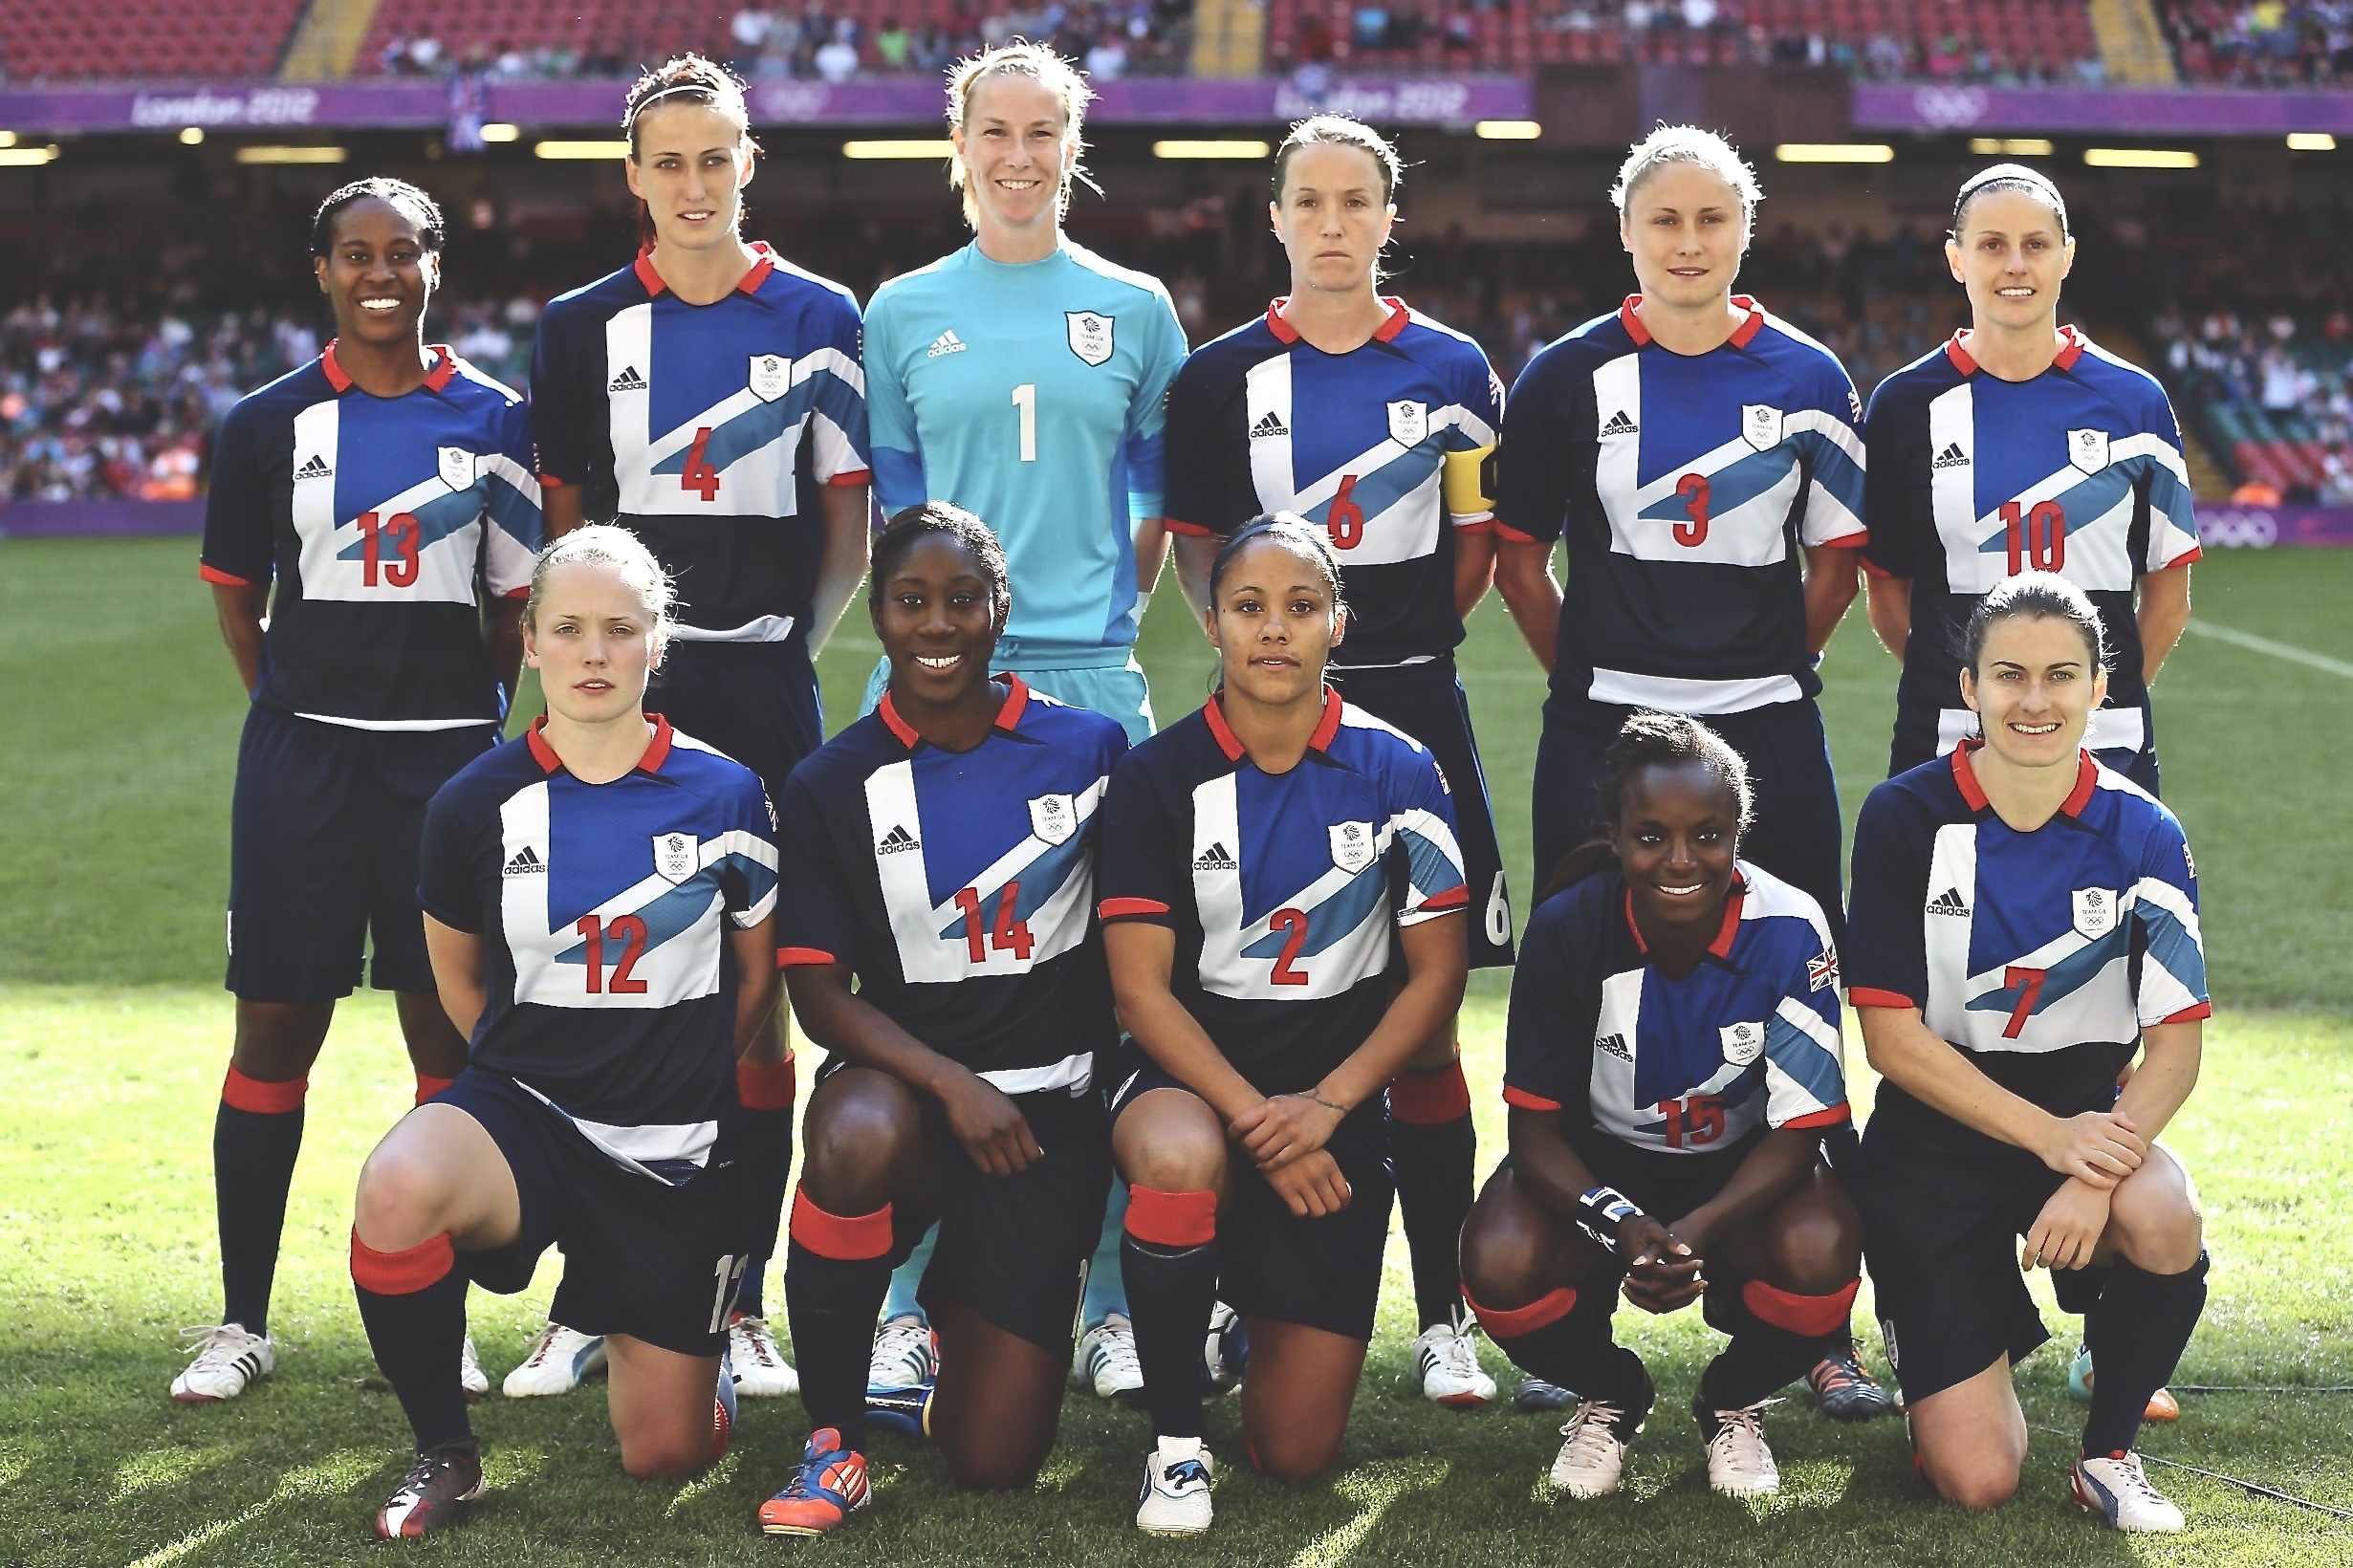 Team GB Women's side line up for a team photo prior to a match at London 2012